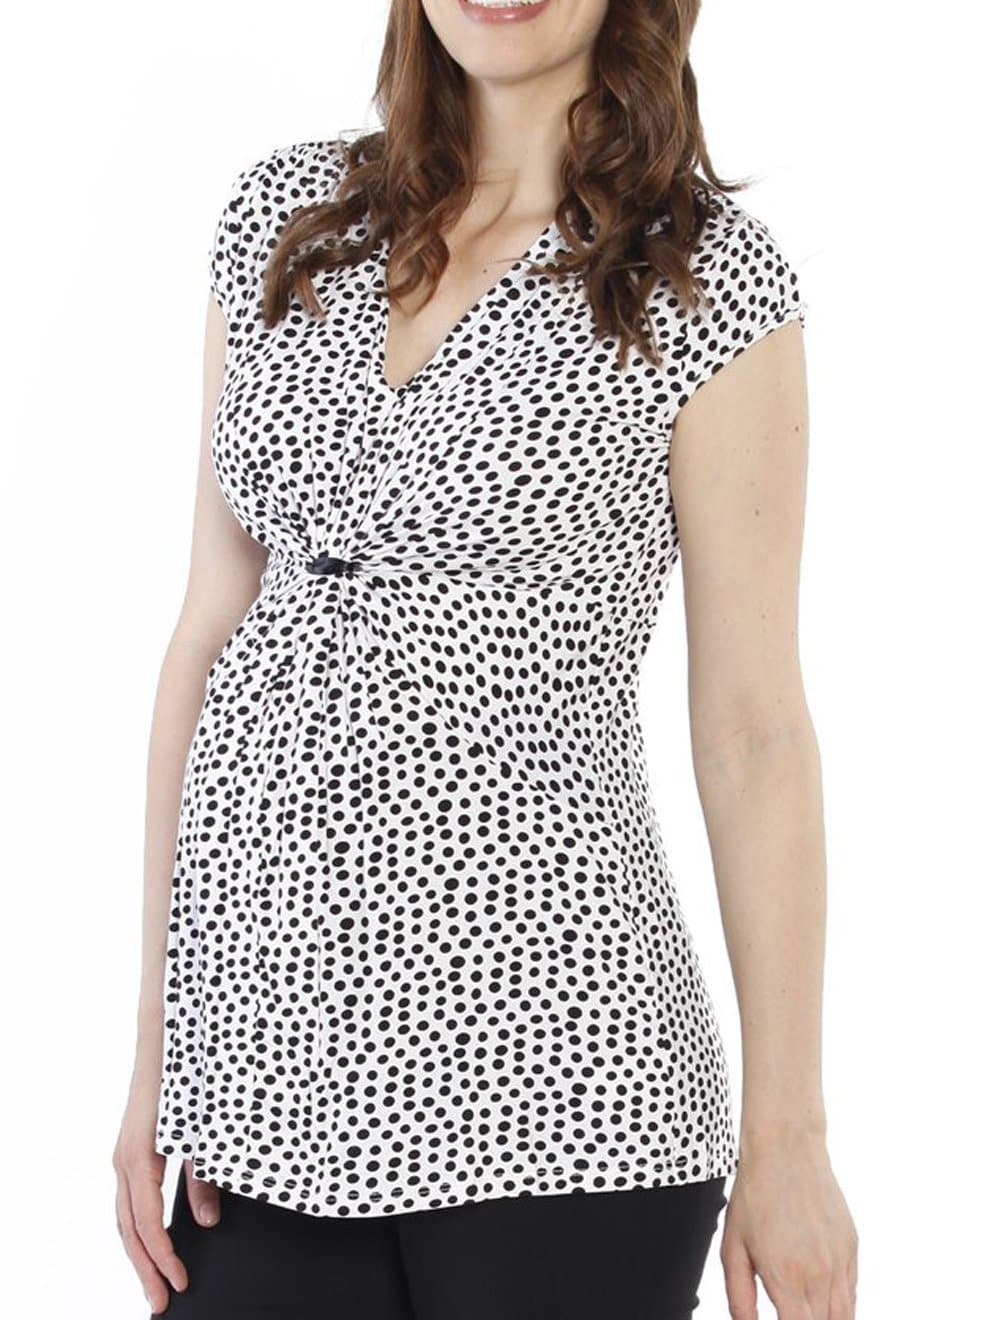 Maternity Gathered Front Top - White & Black Dots - Angel Maternity - Maternity clothes - shop online